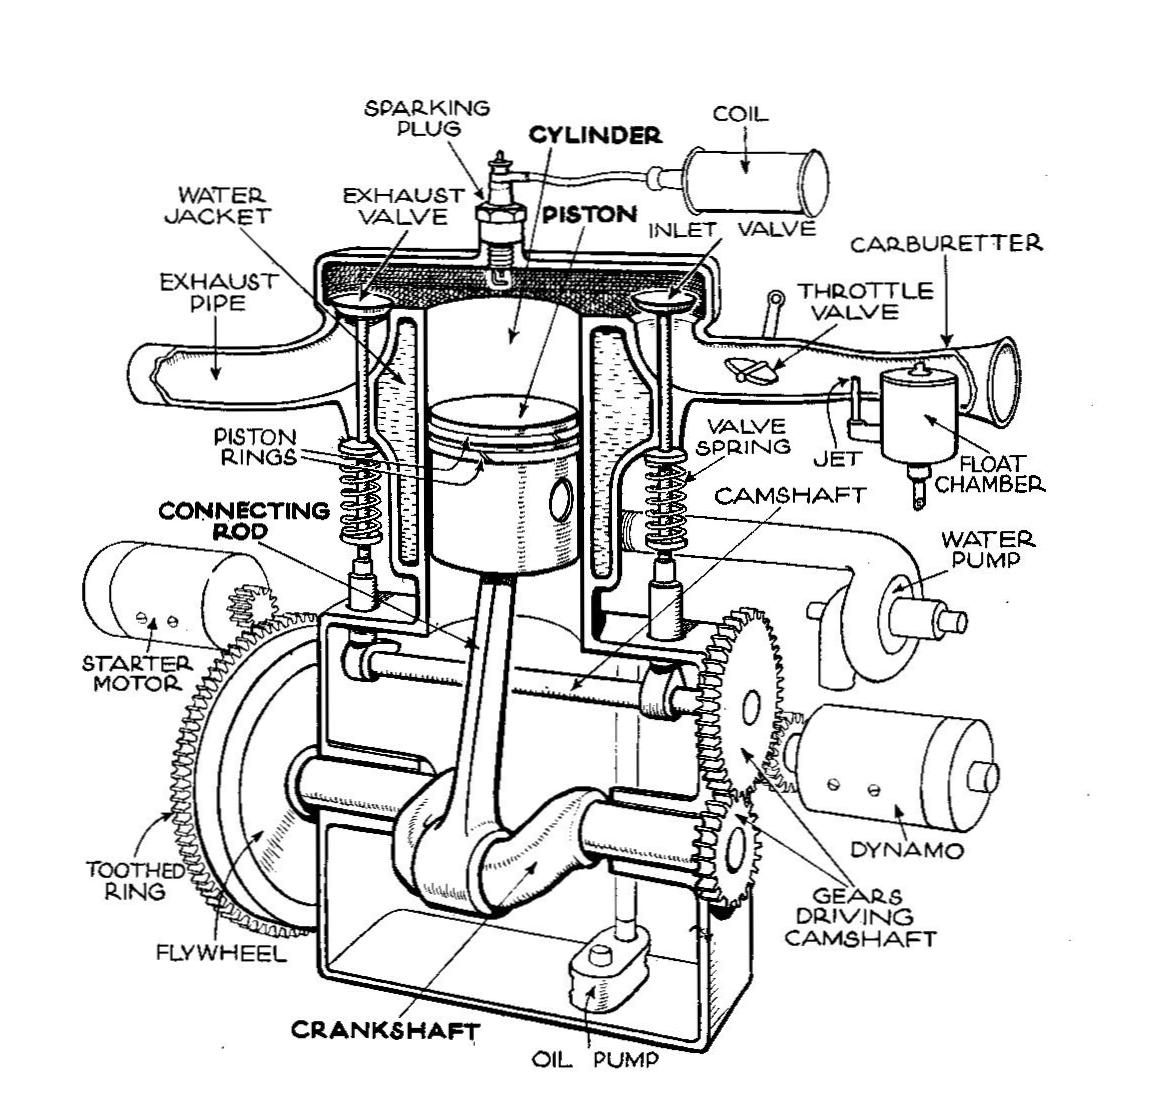 File:Single Cylinder_T Head_engine_(Autocar_Handbook,_13th_ed,_1935) on Volvo Diesel Engines